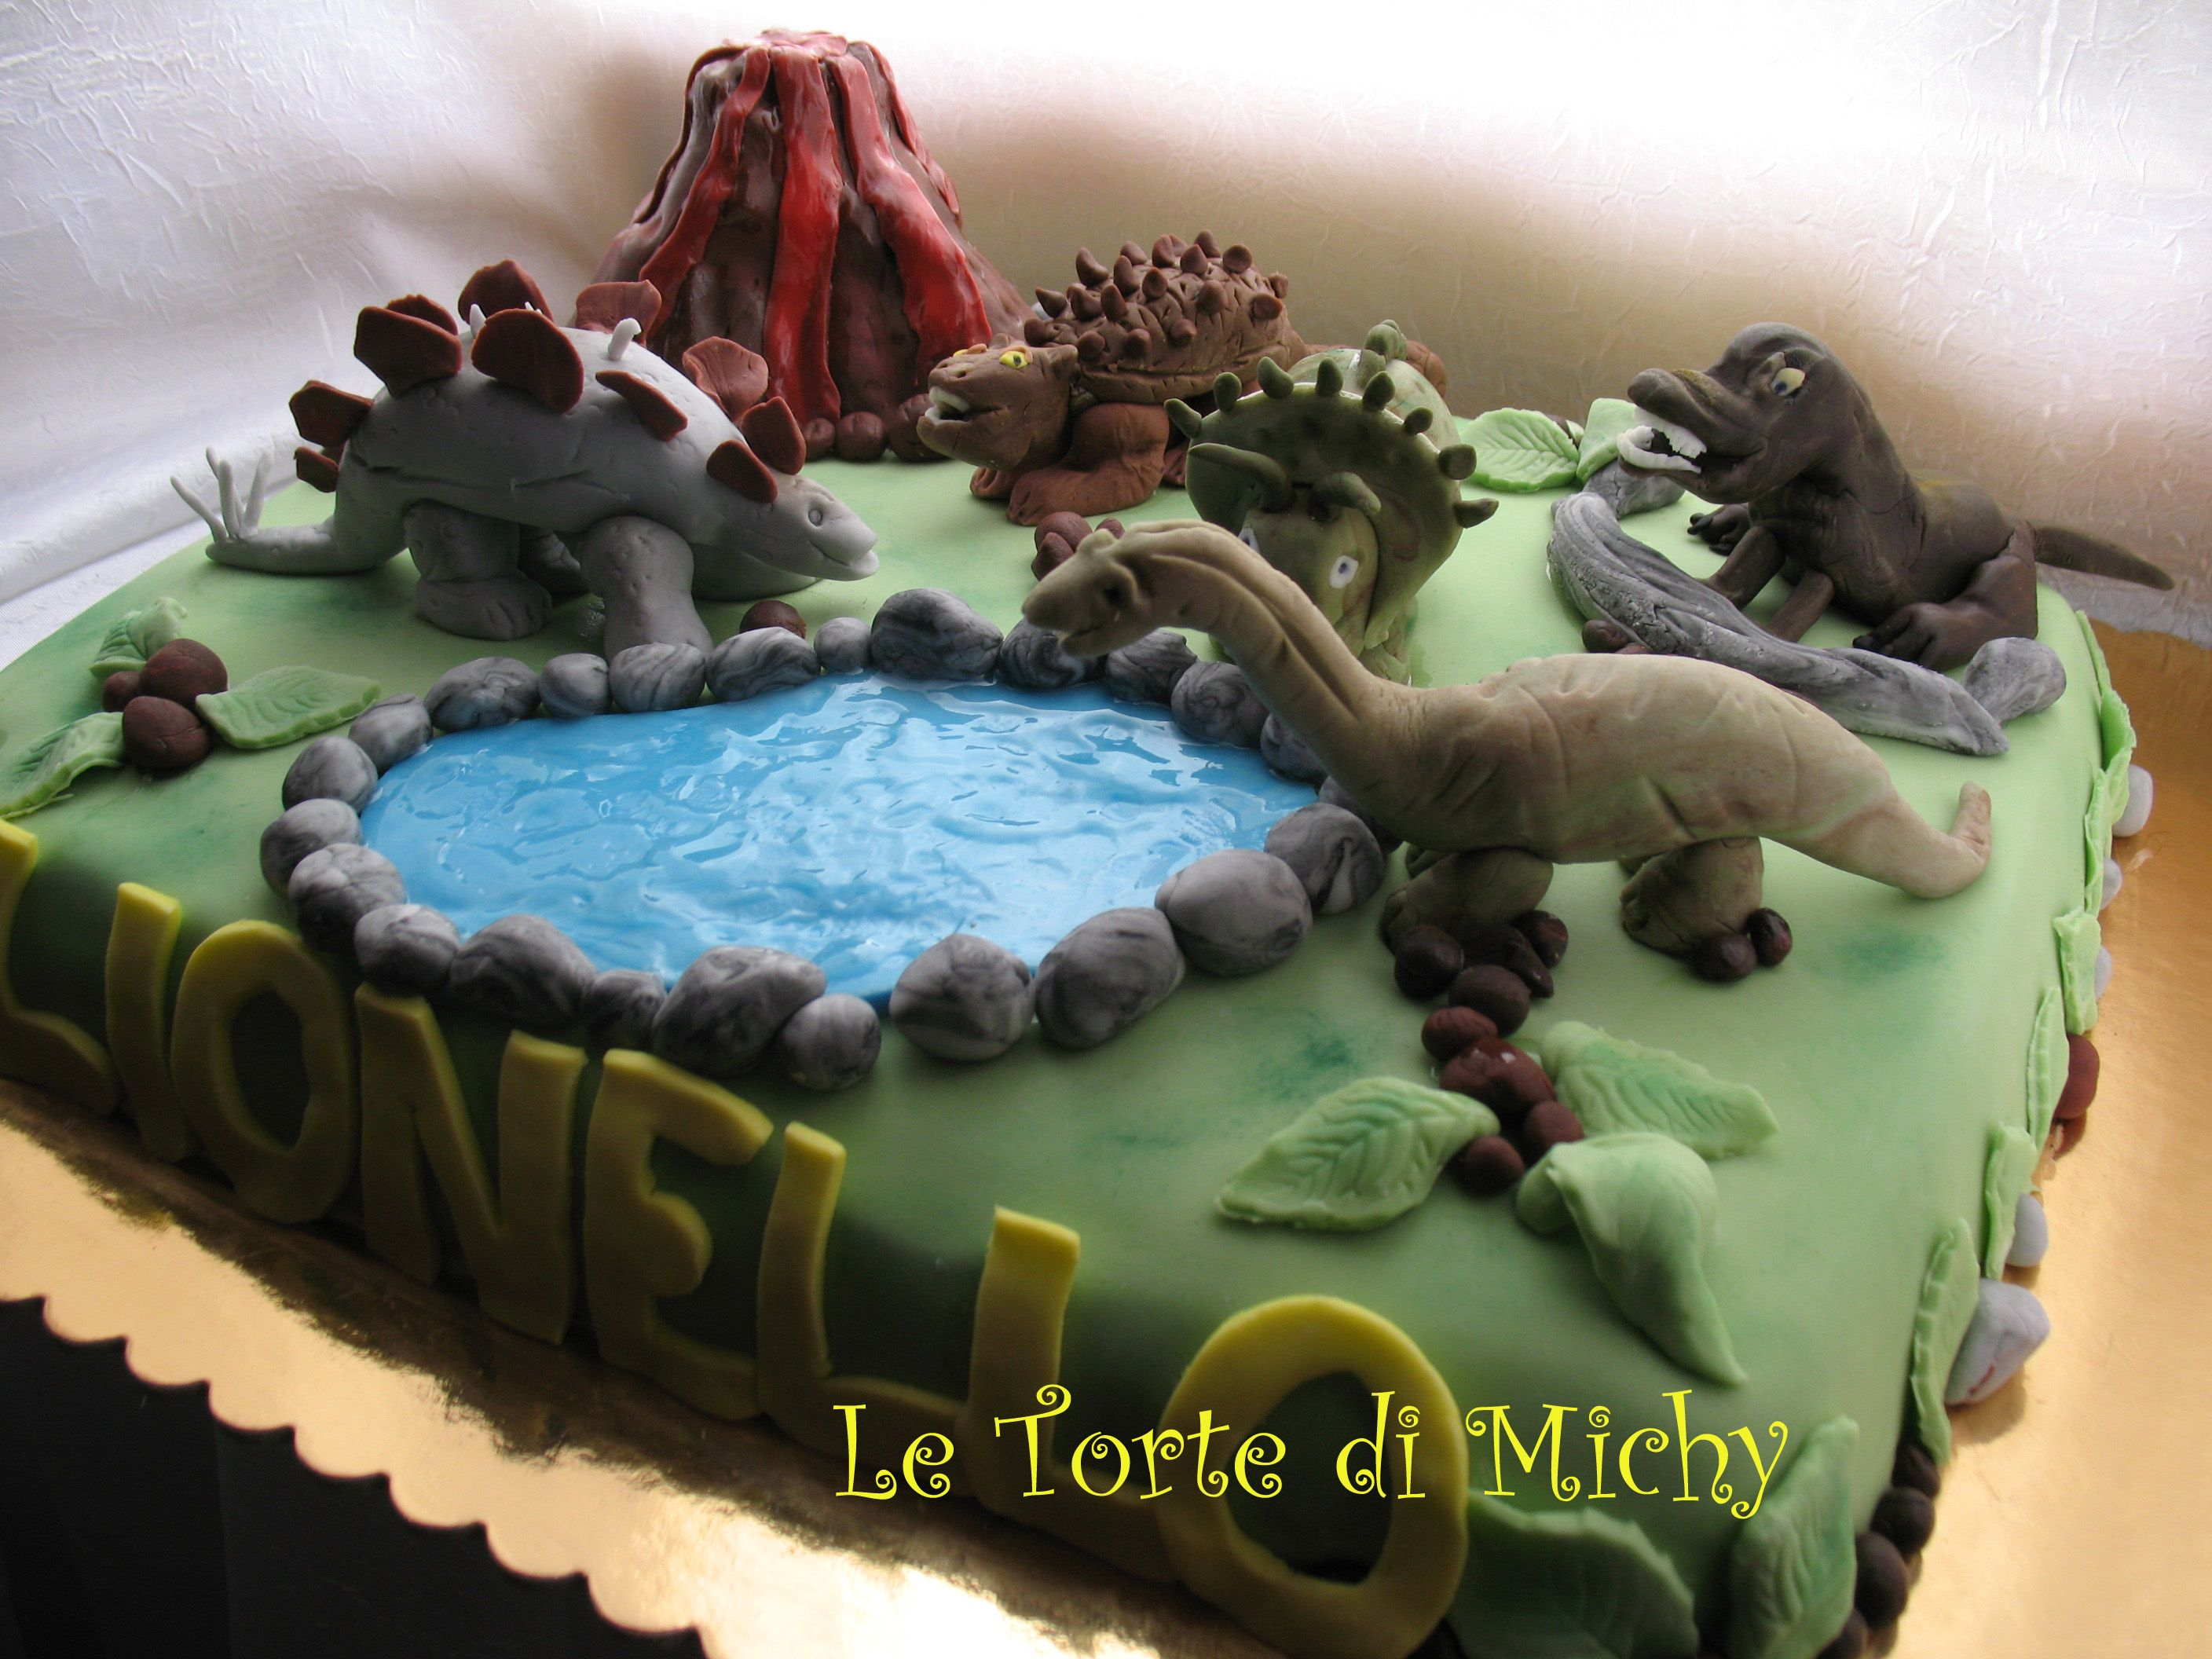 torta dinosauri le torte di michy cake design pinterest cake designs and cake. Black Bedroom Furniture Sets. Home Design Ideas